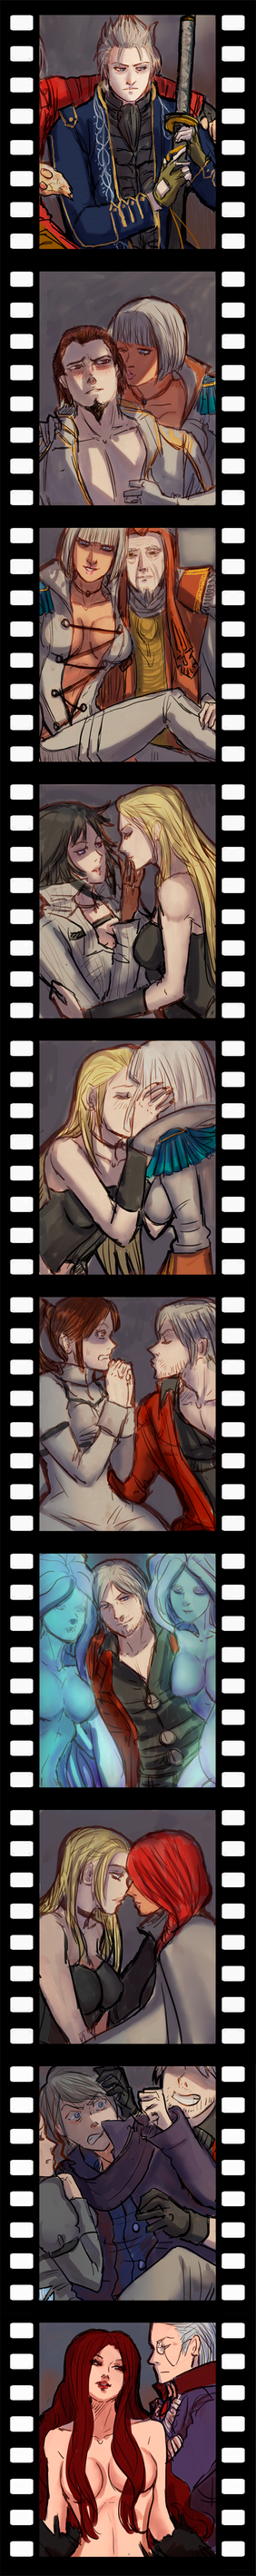 +(- Devil may cry doodles [7] -)+ by AngelJasiel